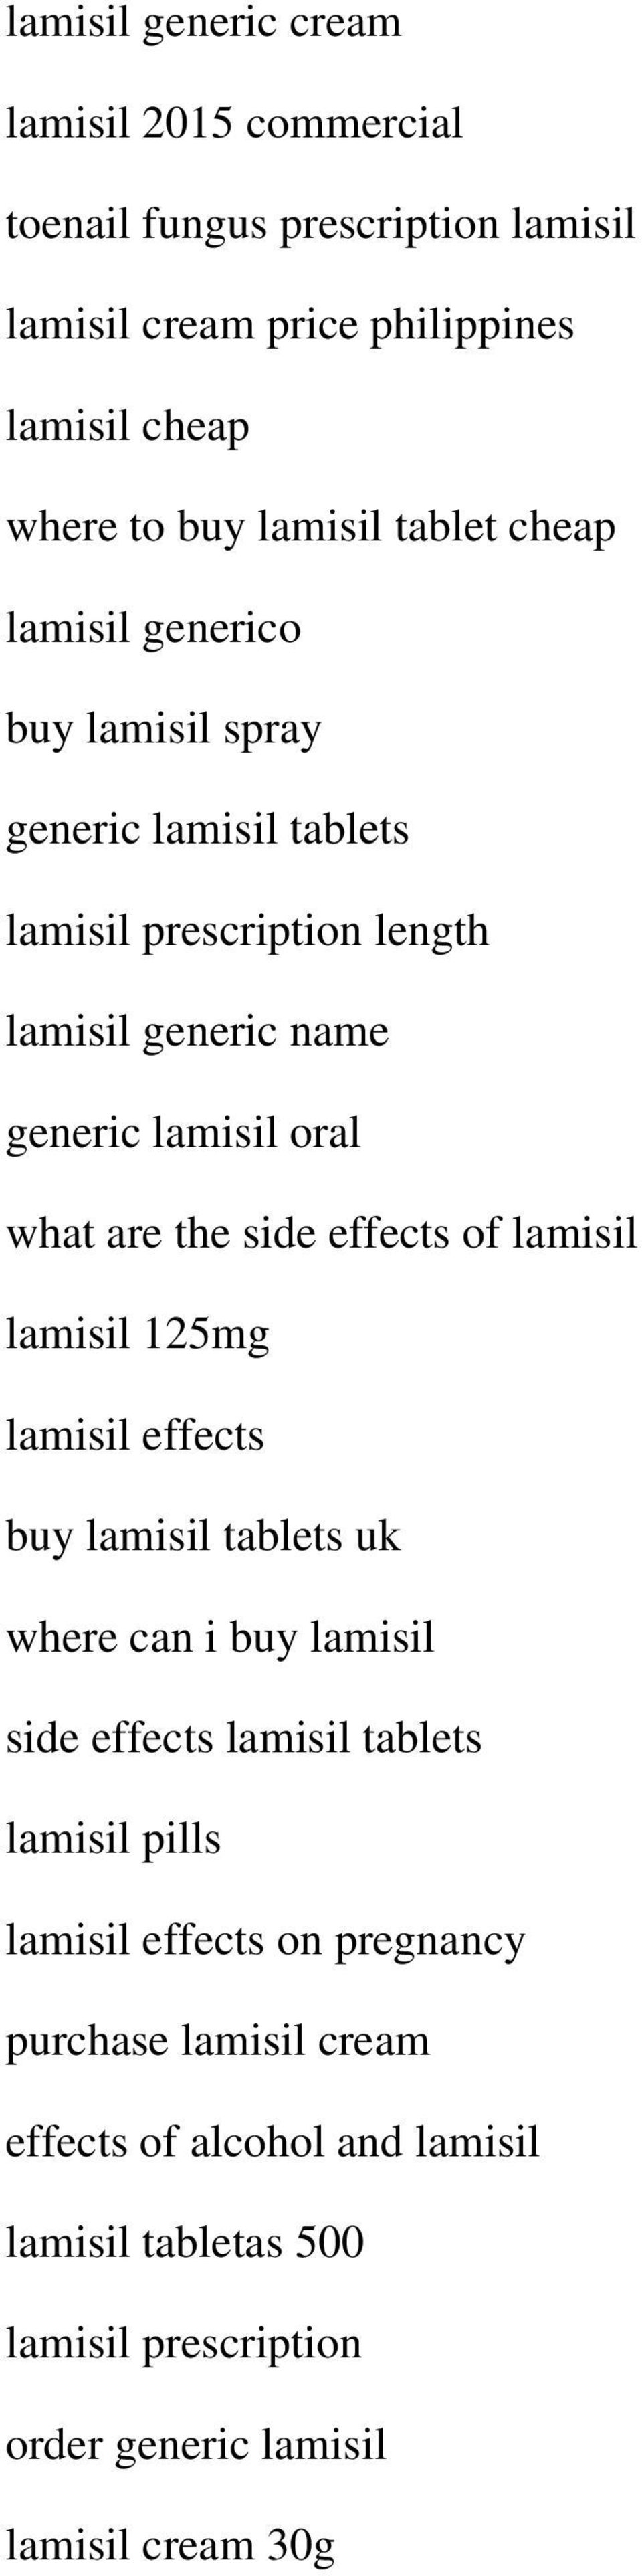 the side effects of lamisil lamisil 125mg lamisil effects buy lamisil tablets uk where can i buy lamisil side effects lamisil tablets lamisil pills